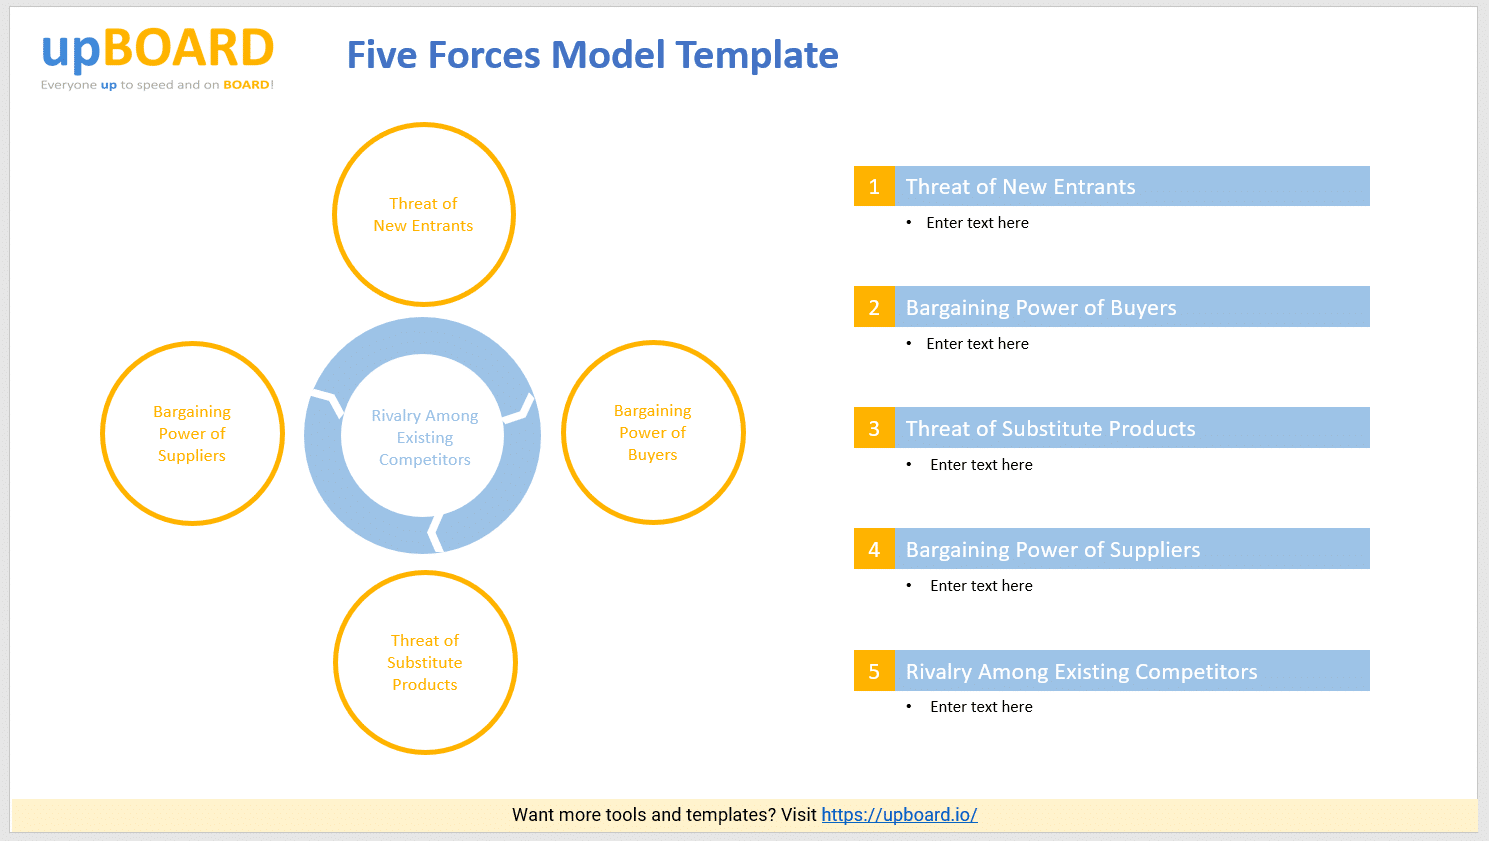 Five Forces Model Template - Free PowerPoint Tool